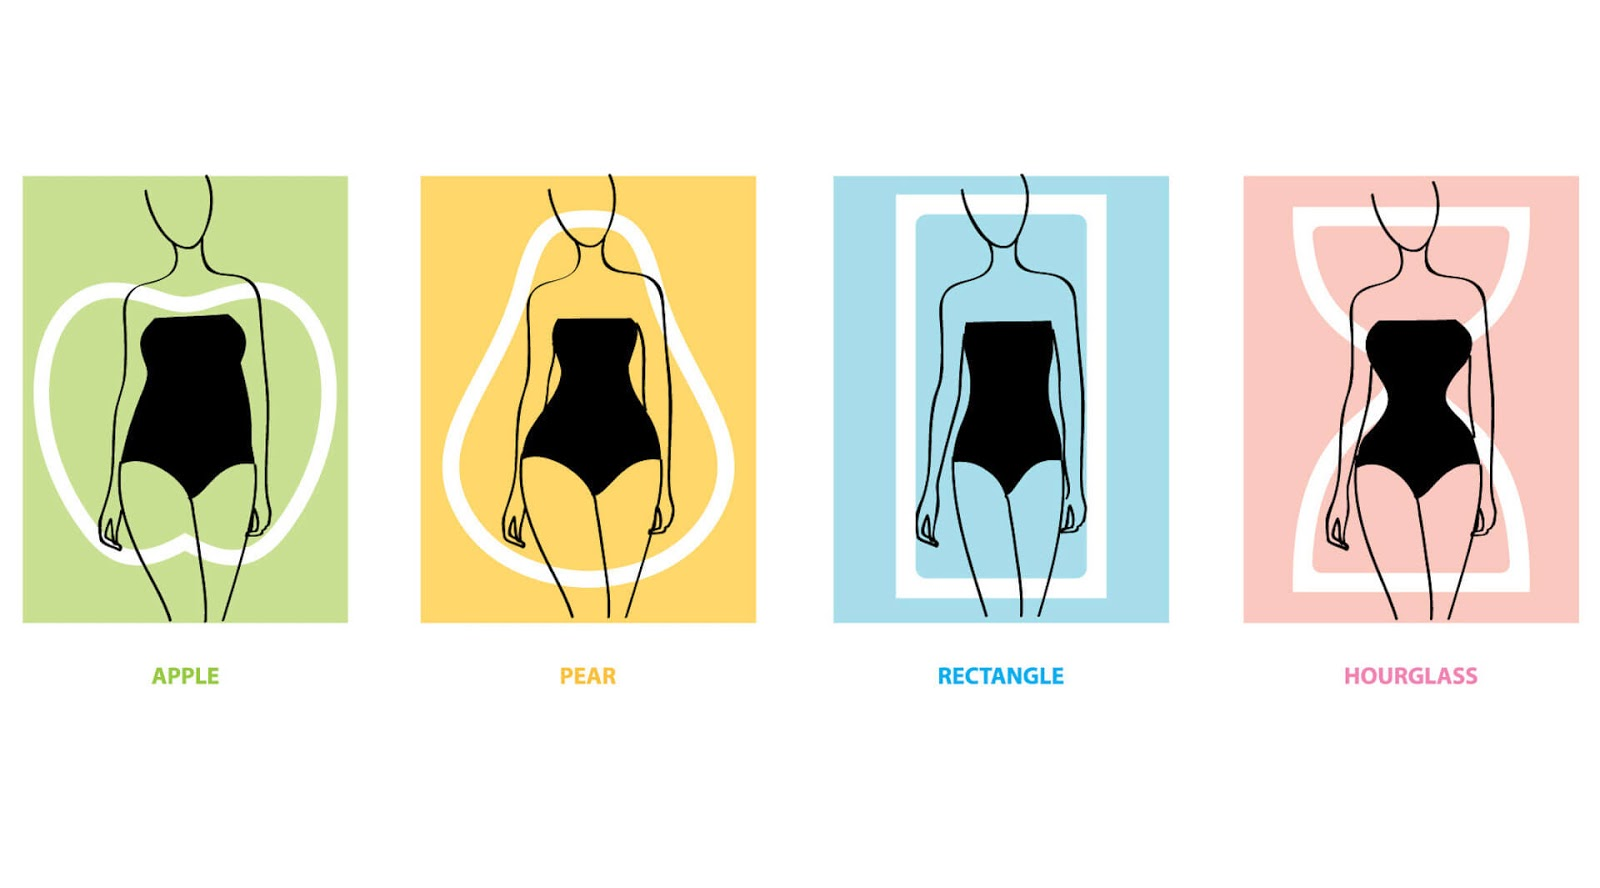 Photos of apple, pear, rectangle and hourglass bodyshapes